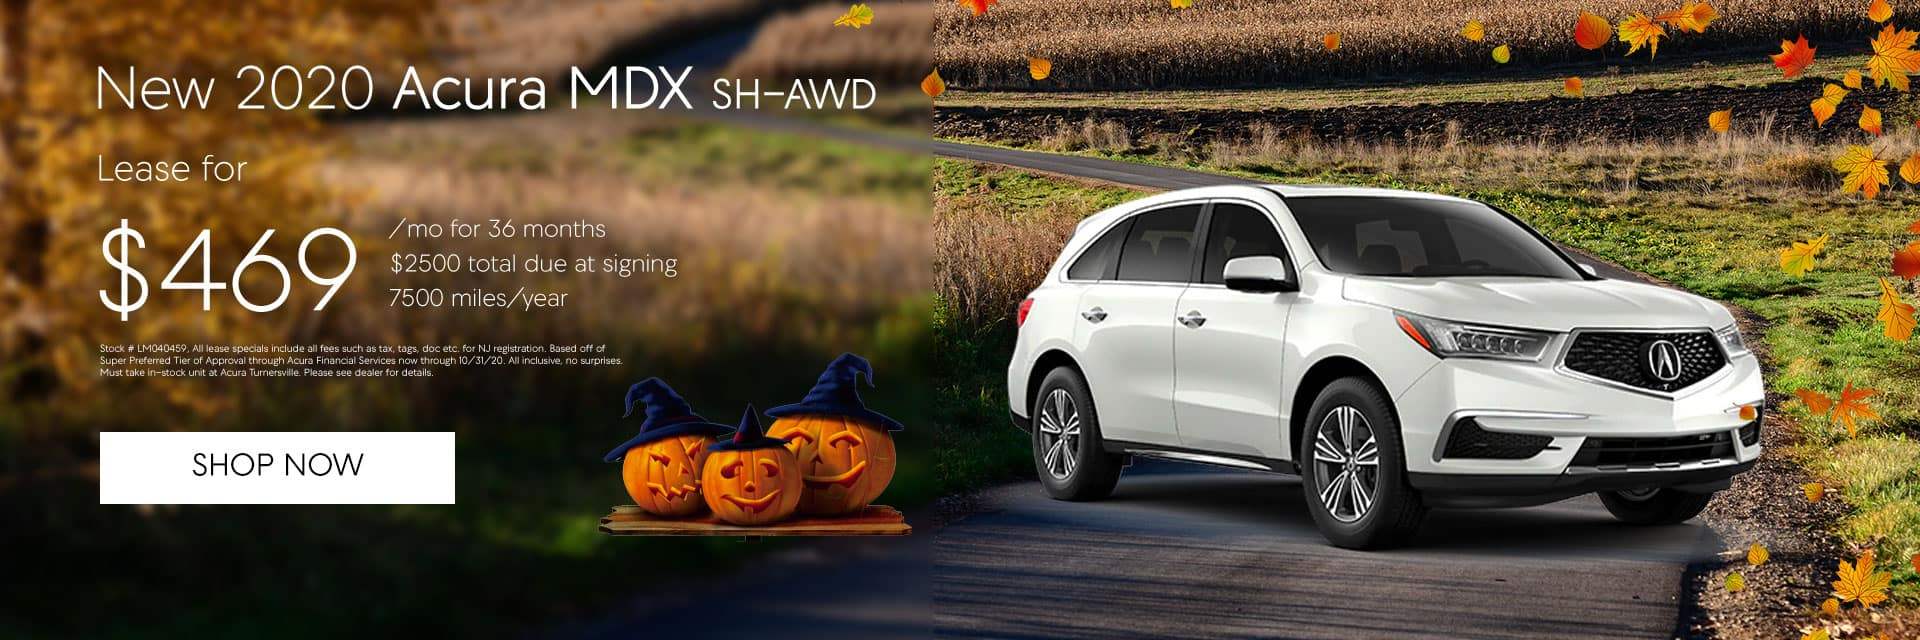 MDX lease offer